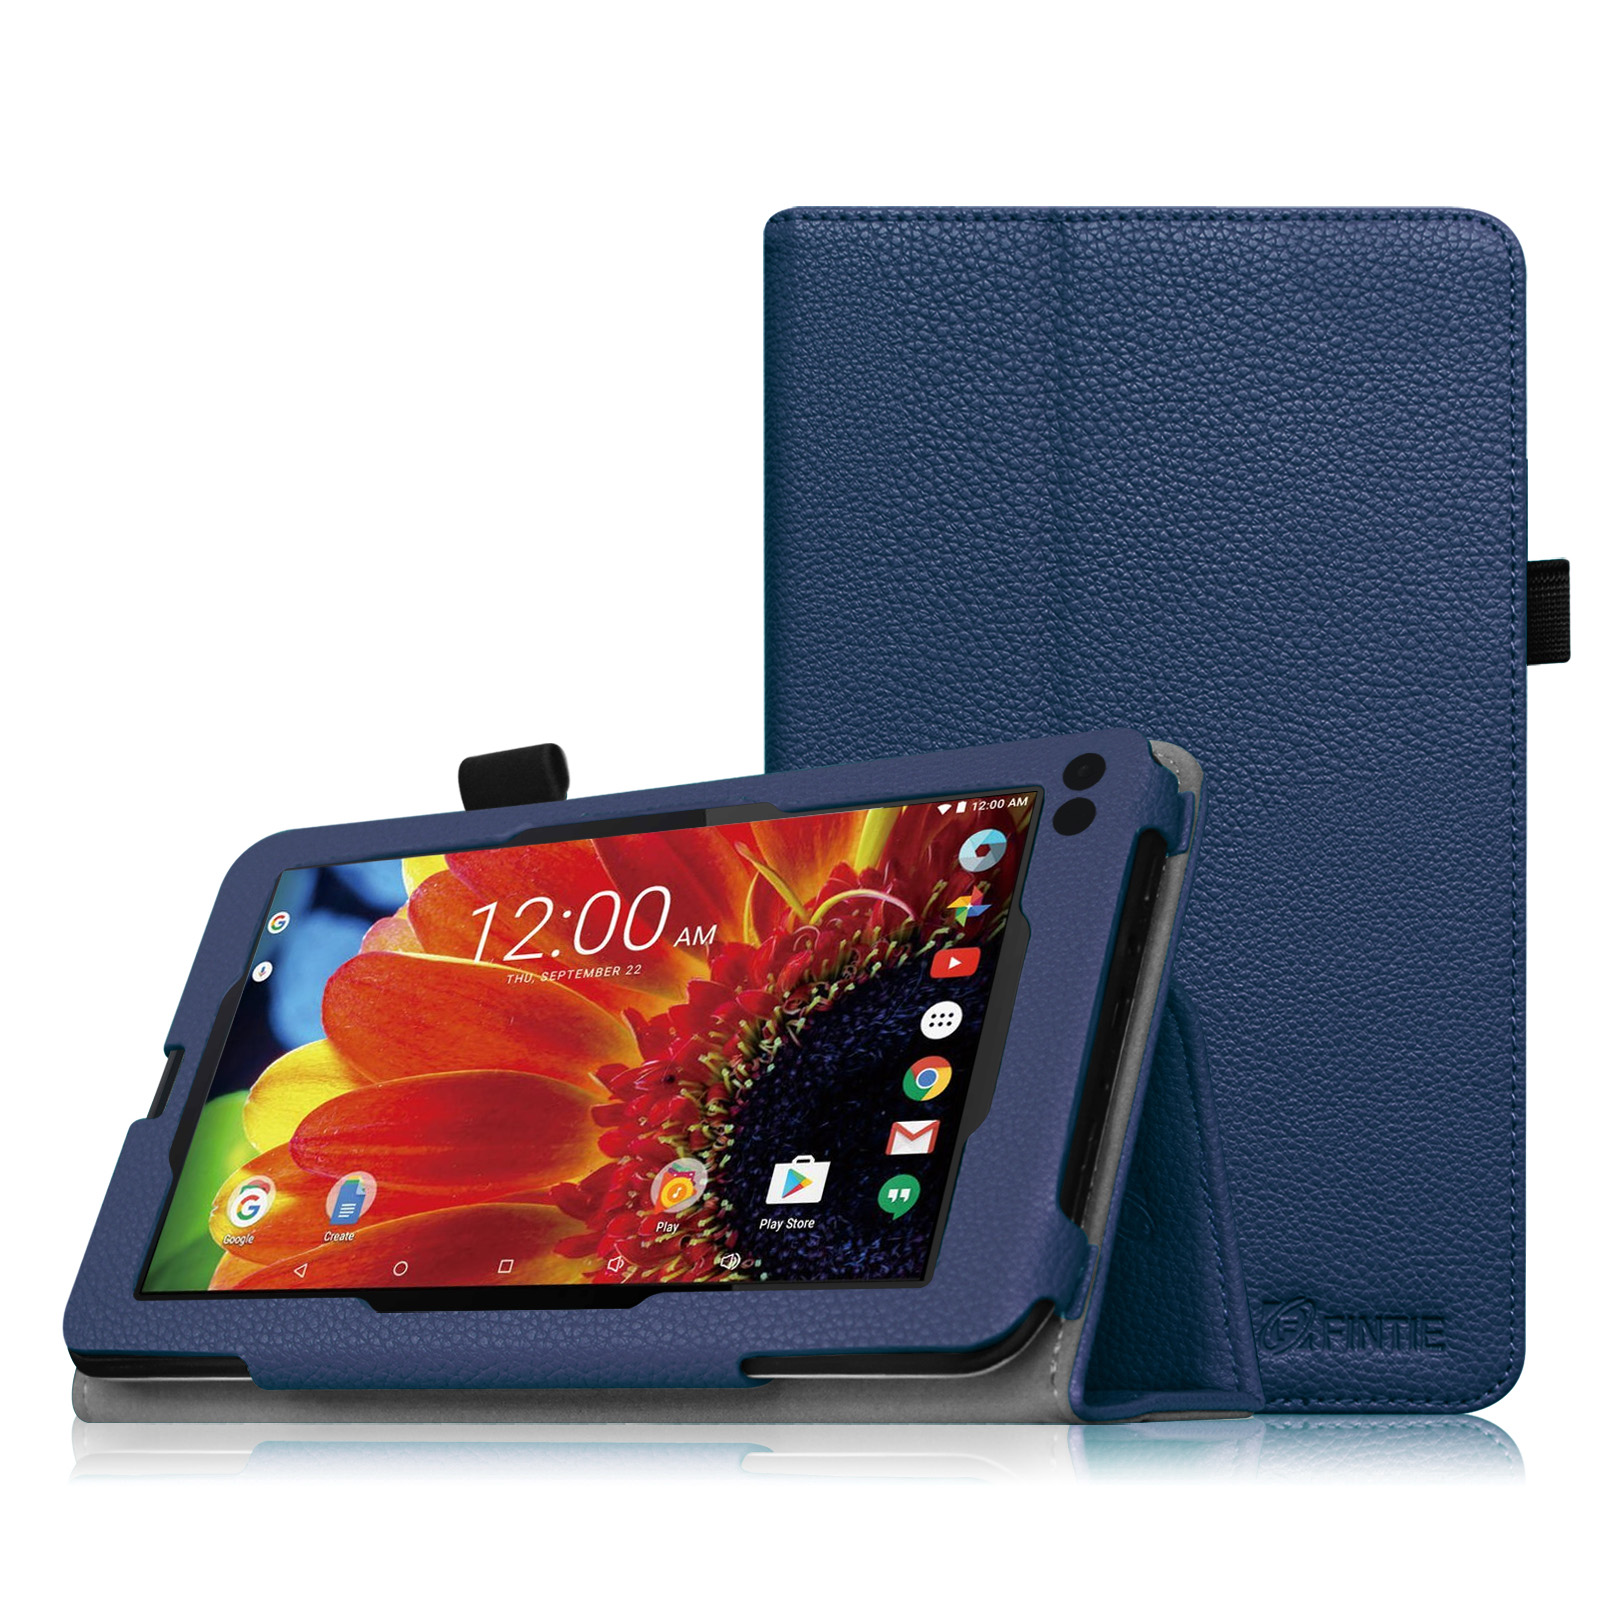 "Fintie Premium PU Leather Folio Case Stand Cover for RCA 7"" Tablet / RCA Voyager II 7"" Tablet WIFI Android, Navy"